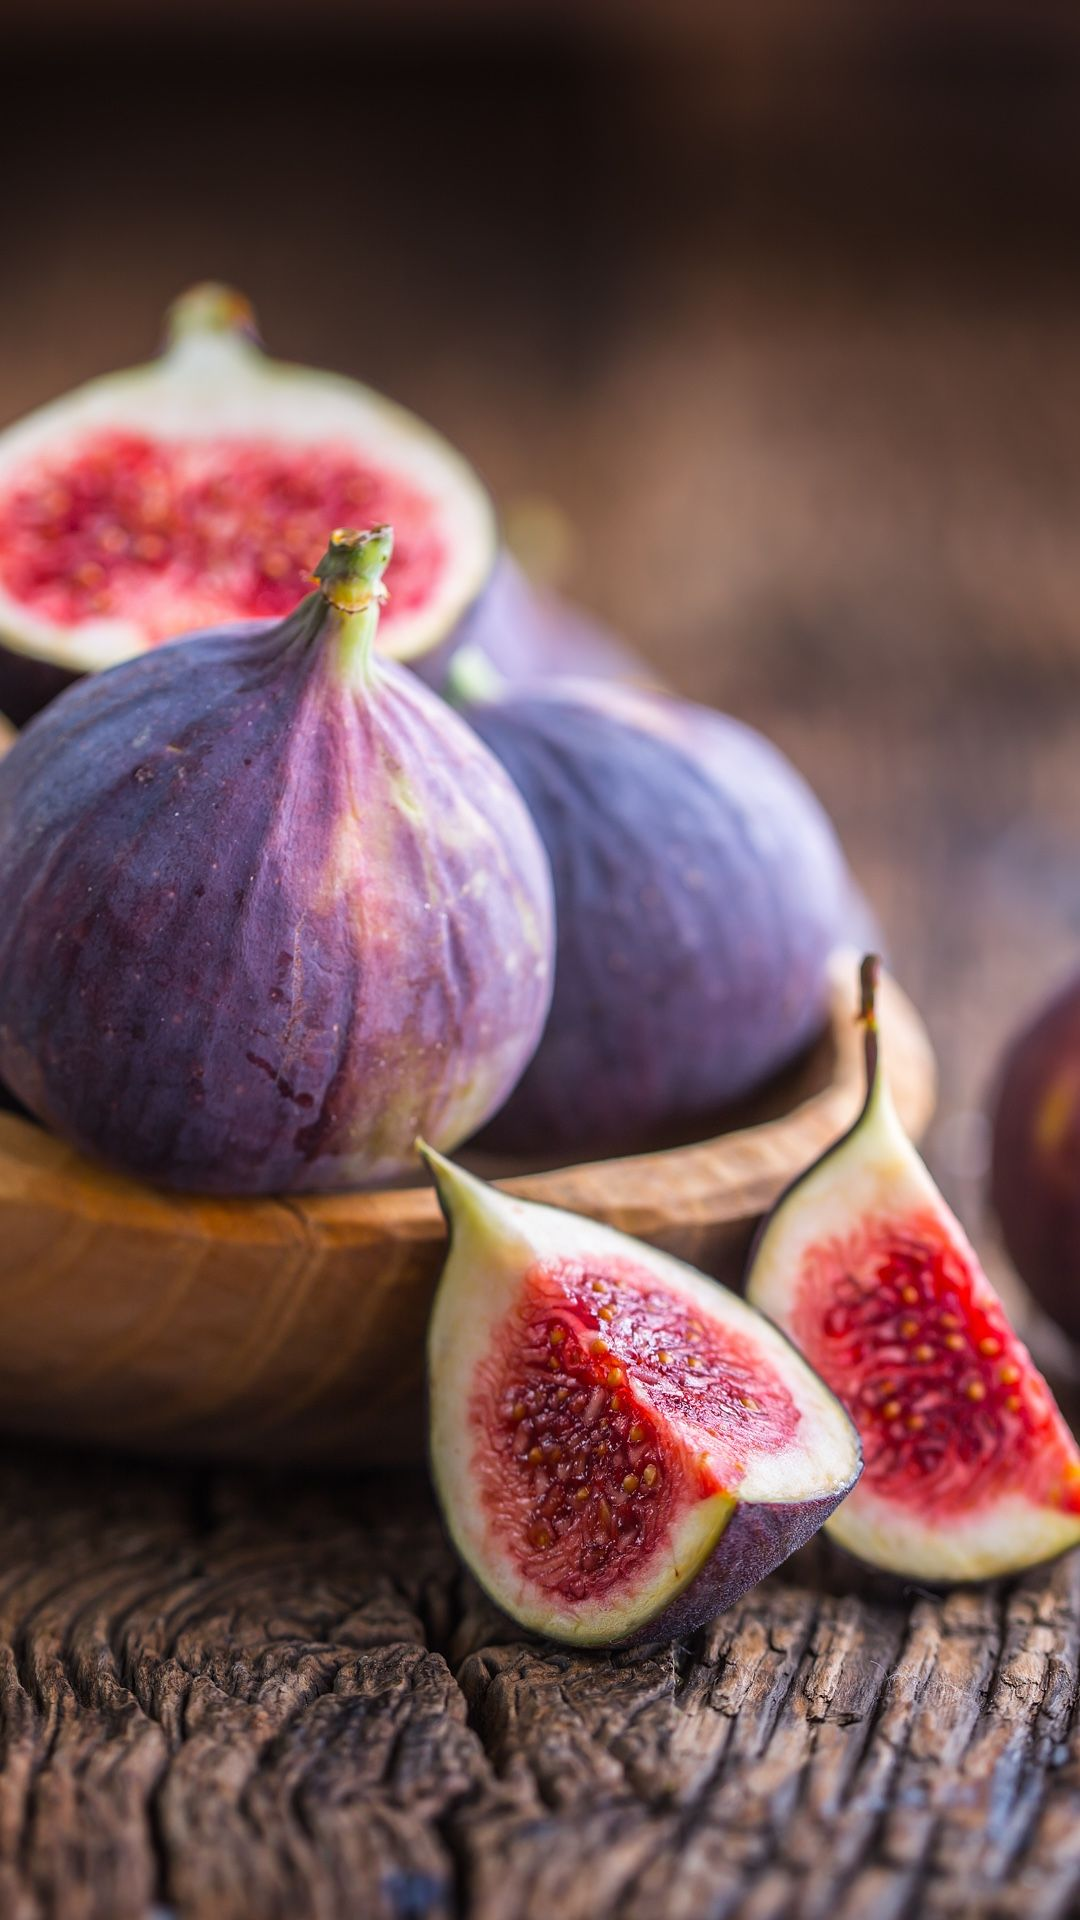 Figs Wallpaper for your iPhone XS Max from Everpix